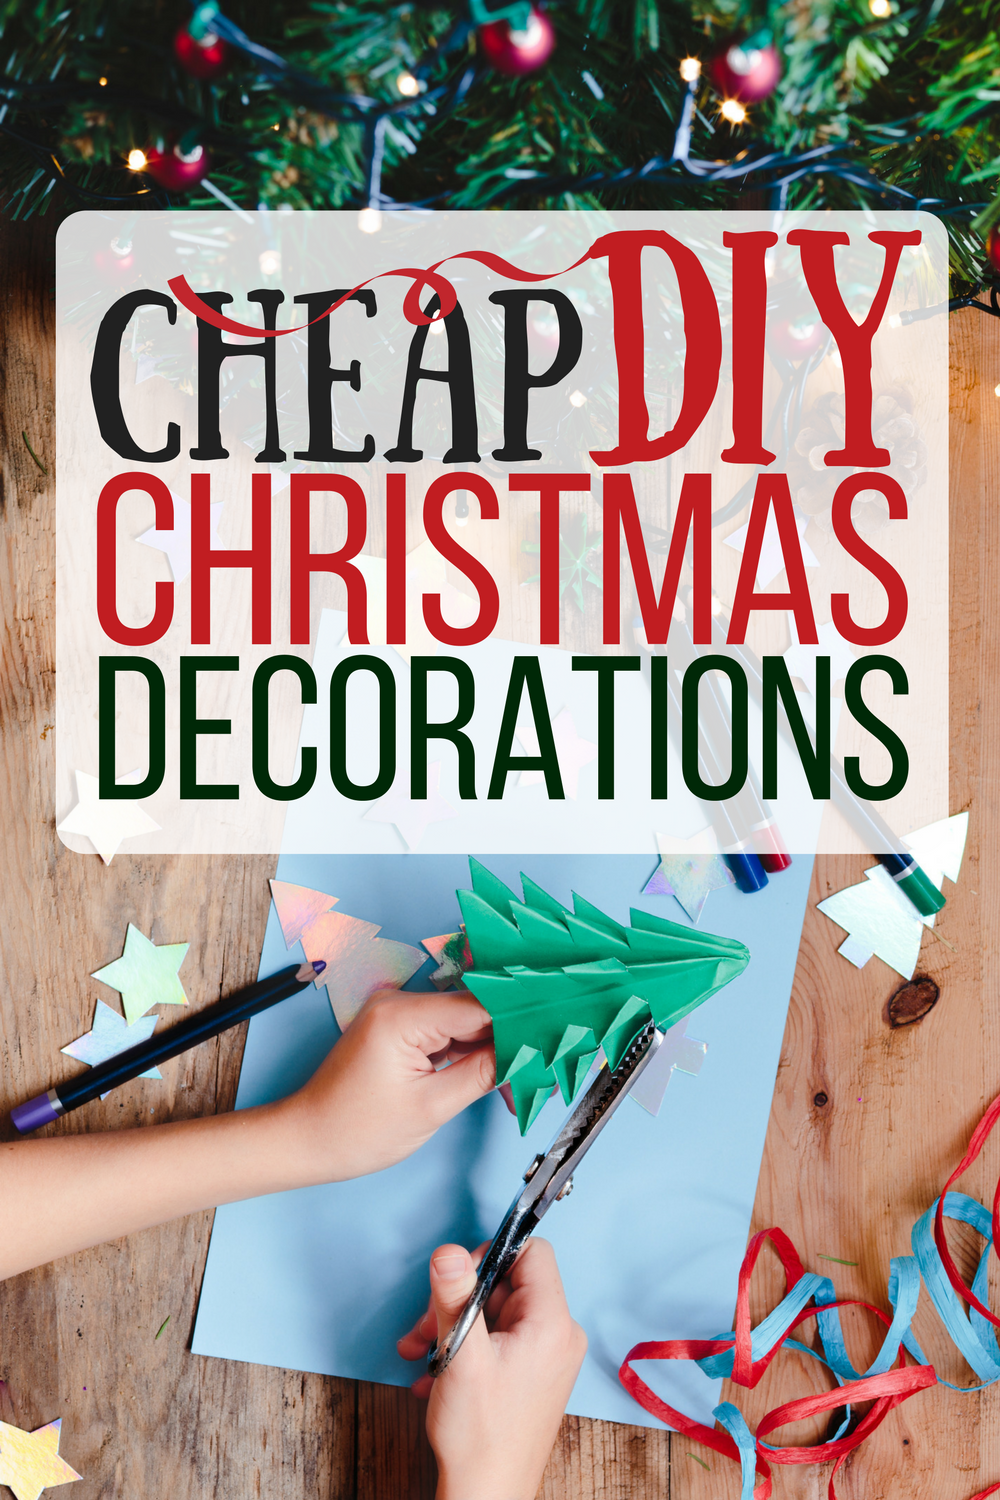 Cheap & Easy DIY Christmas Decorations- Thanks! I was trying to figure out how